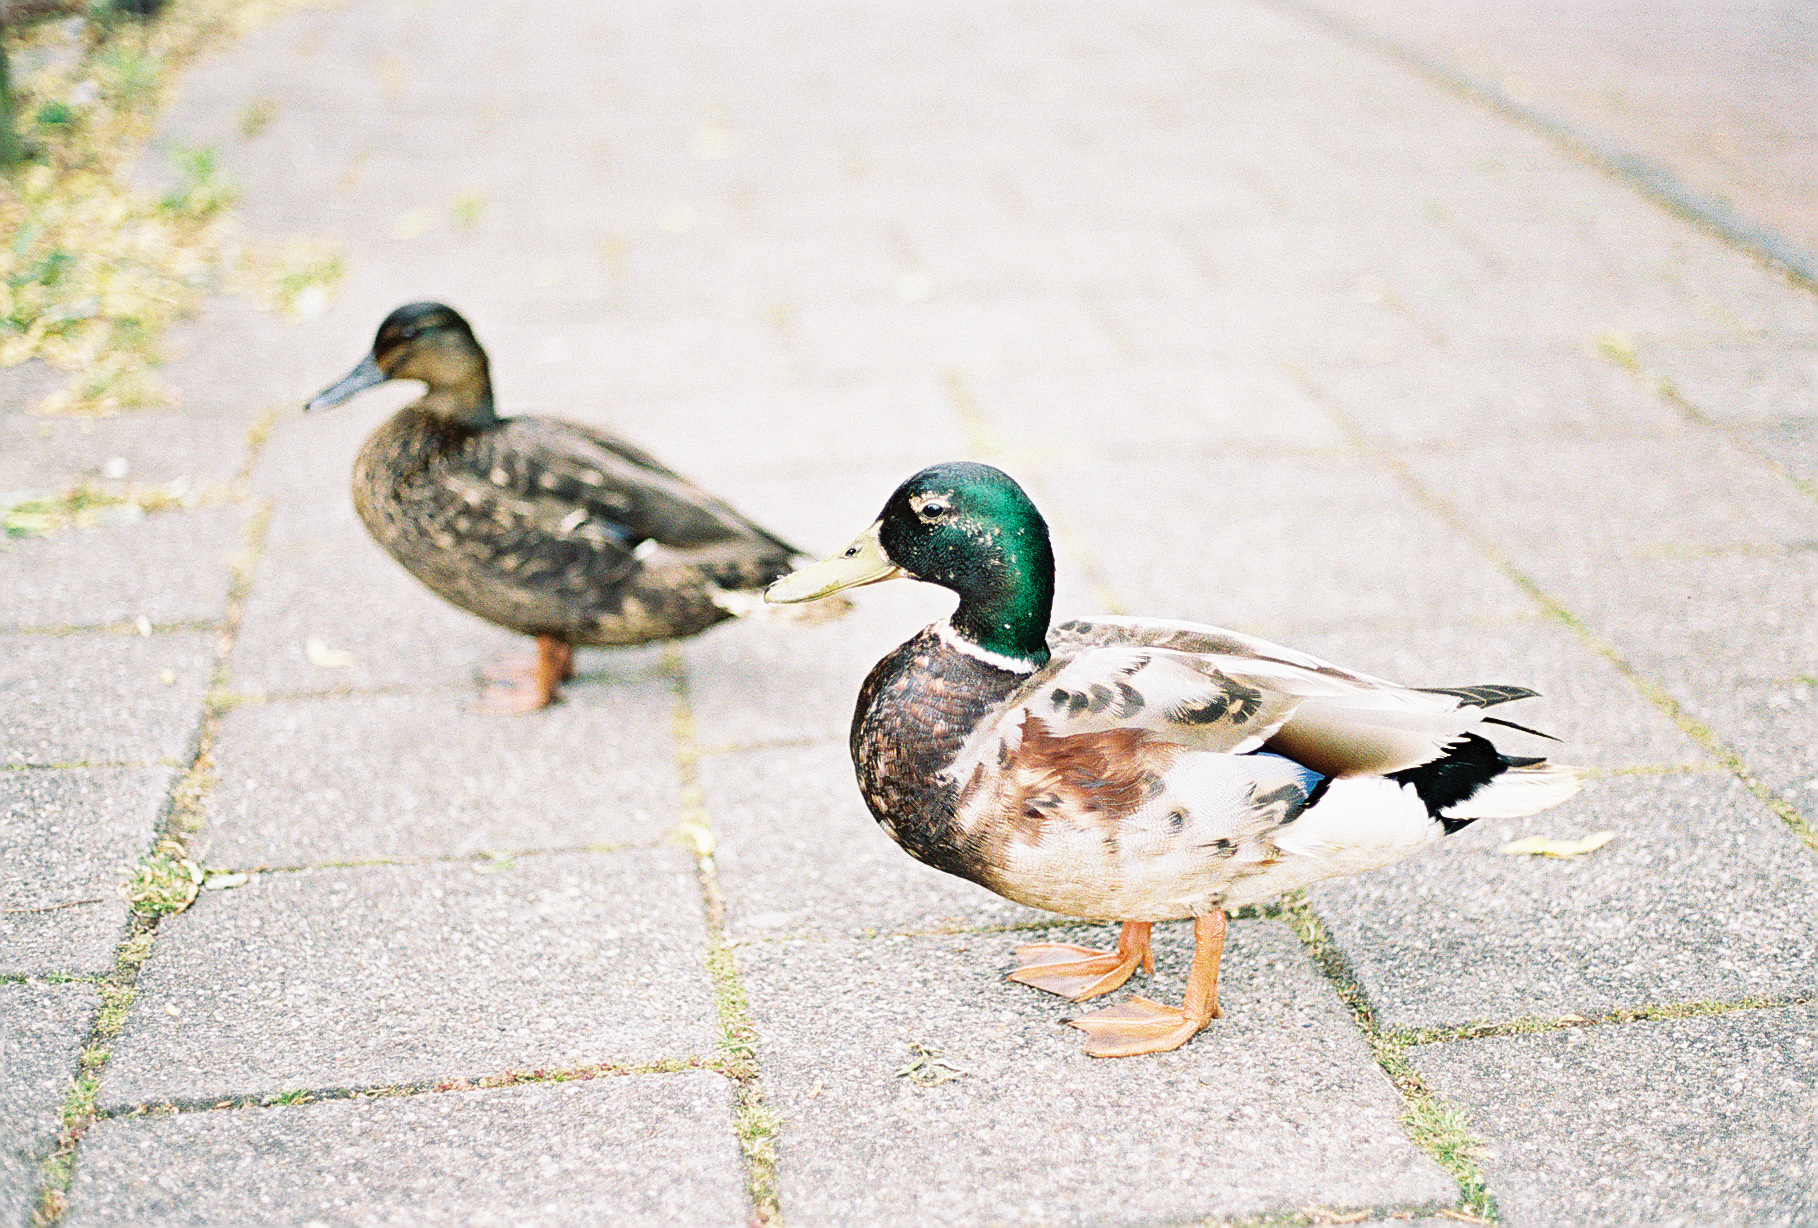 ducks-in-zaandijk-netherlands-european-honeymoon